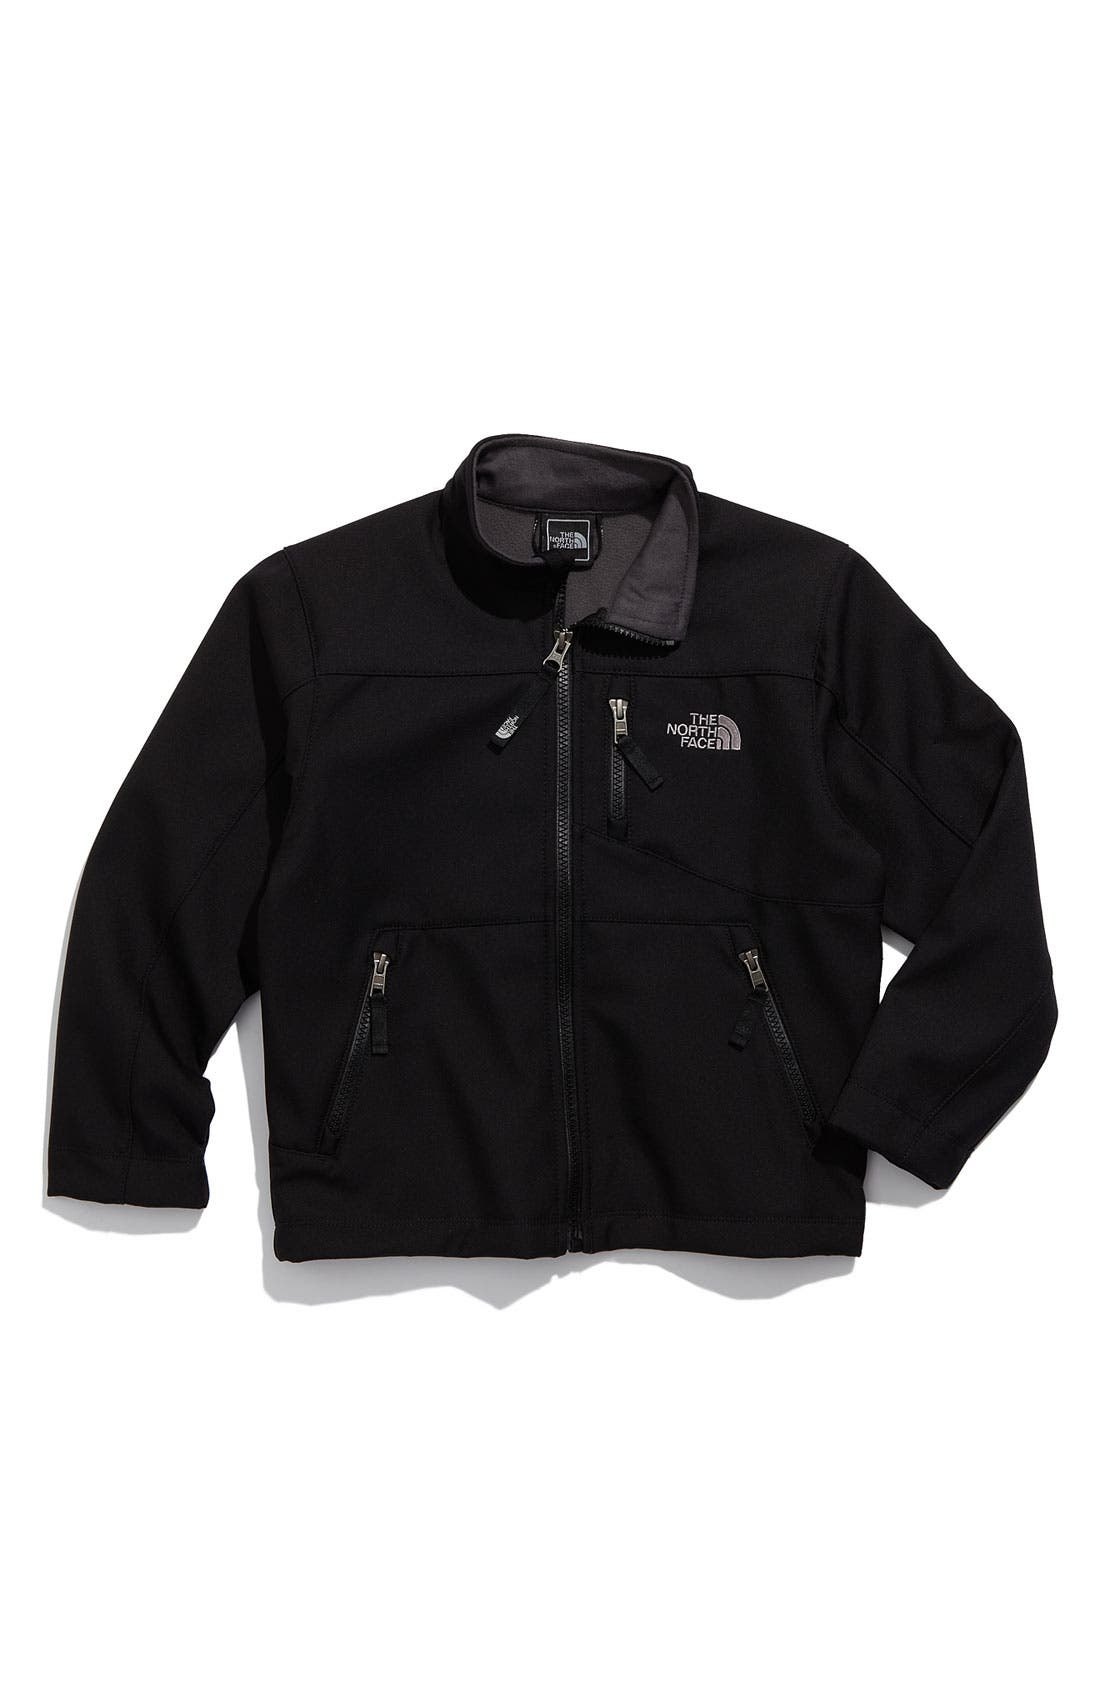 Alternate Image 1 Selected - The North Face 'Apex Bionic' Jacket (Little Boys)